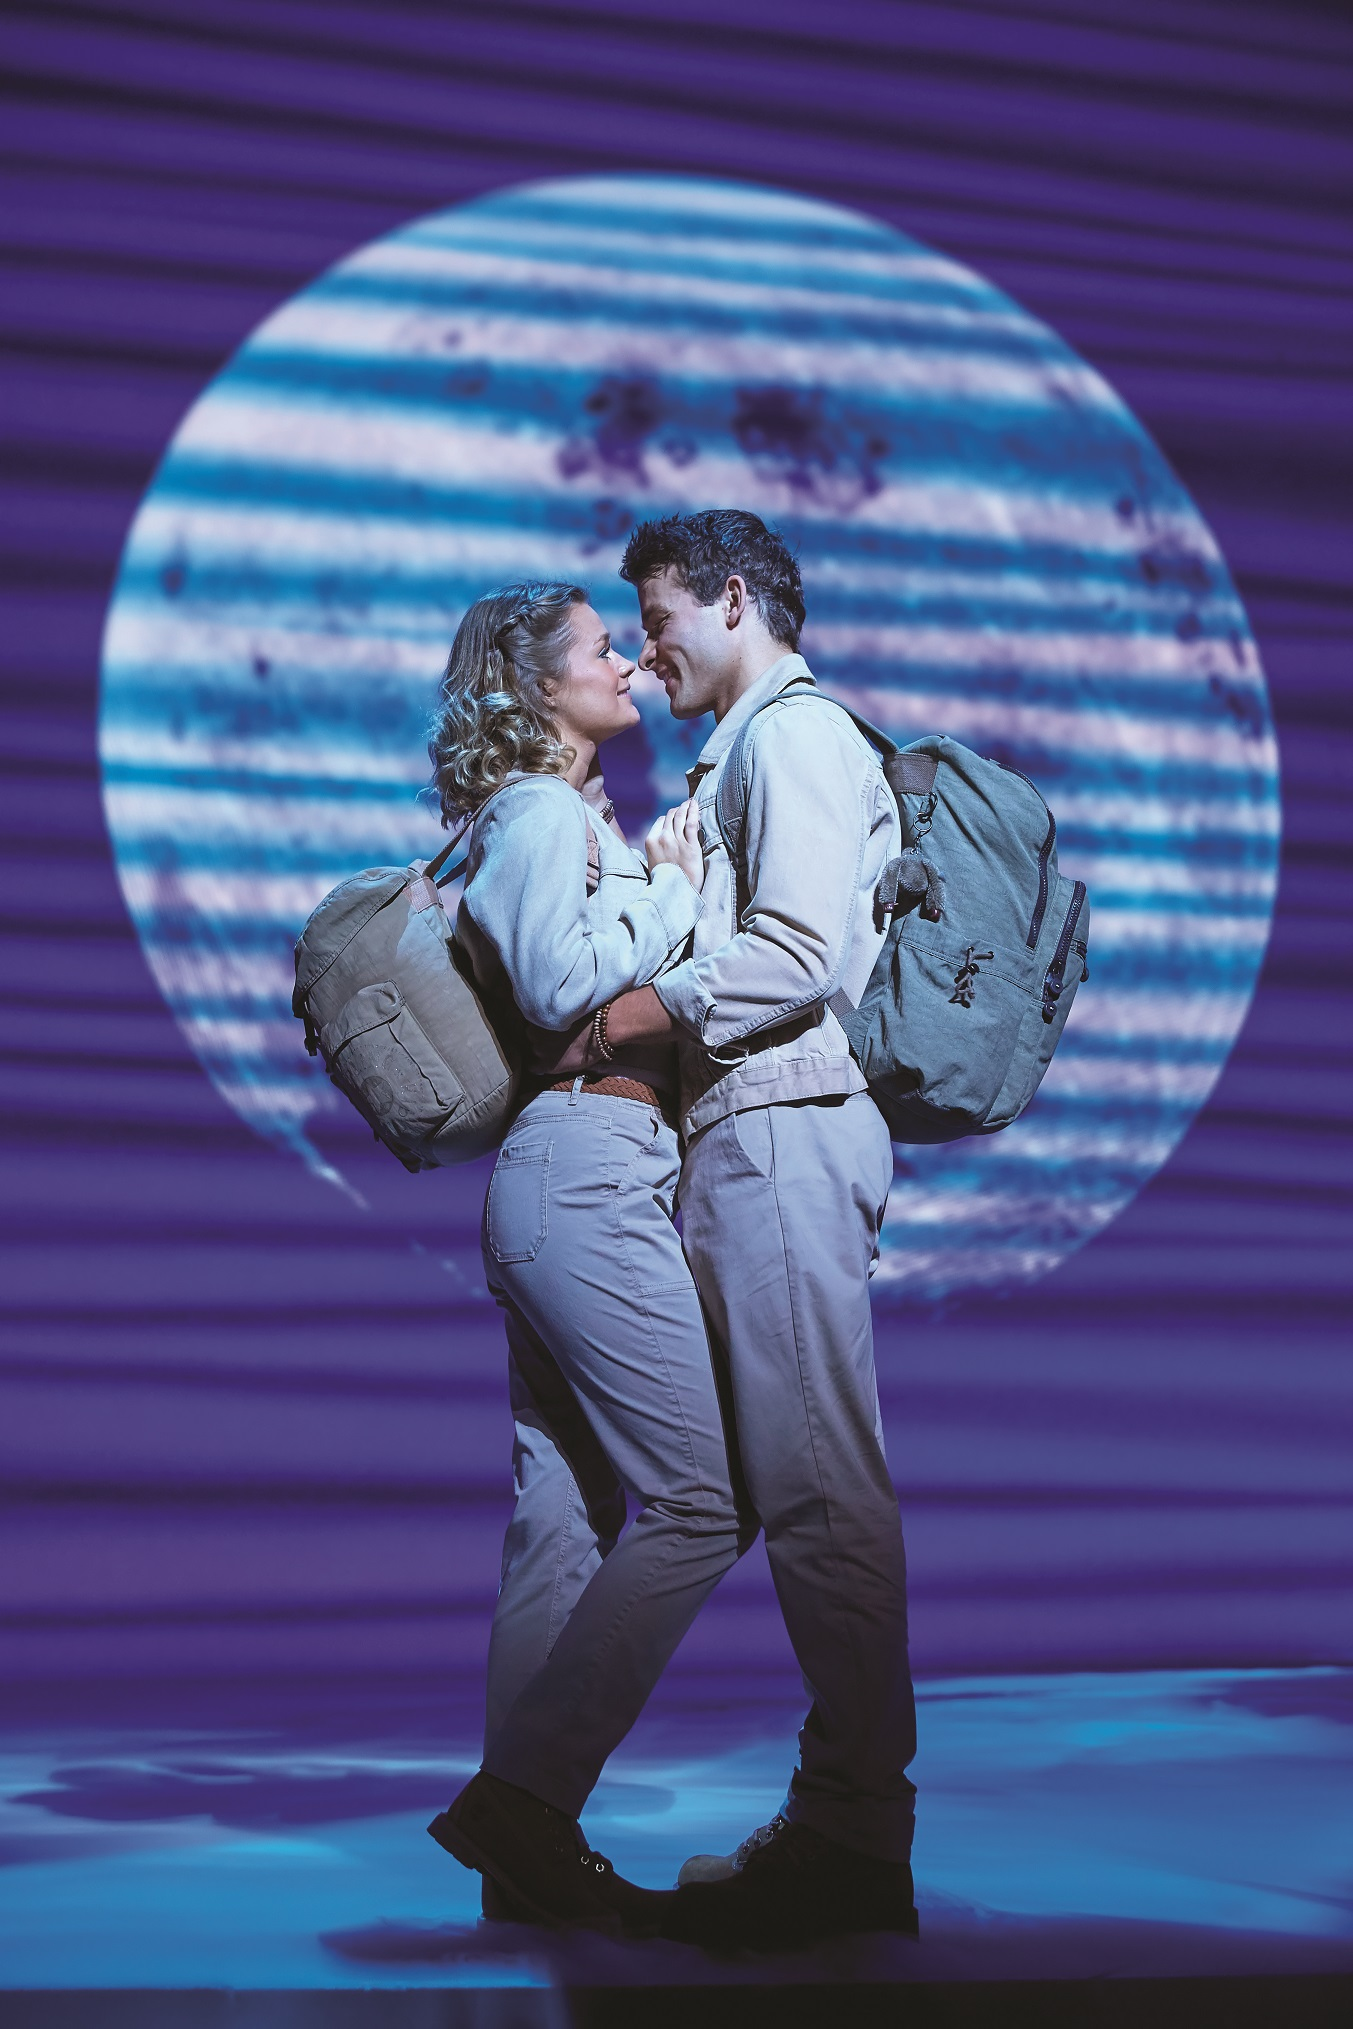 onstage photo of couple wearing travel gear embracing, lit by moonlight scenery